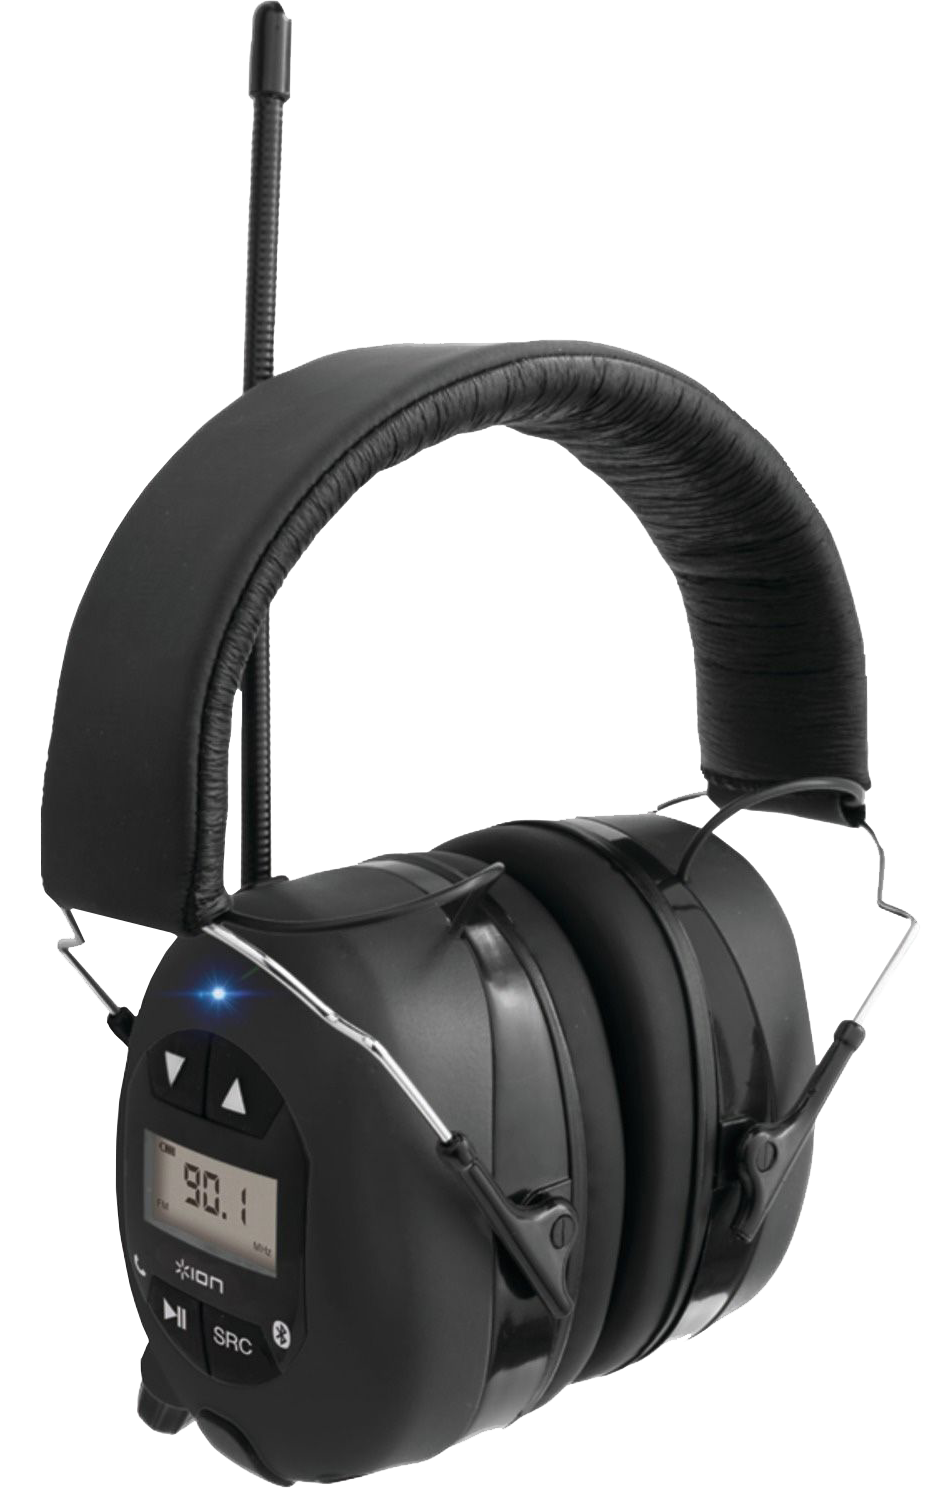 Headphone clipart radio headphone. Ion touch sounds hearing